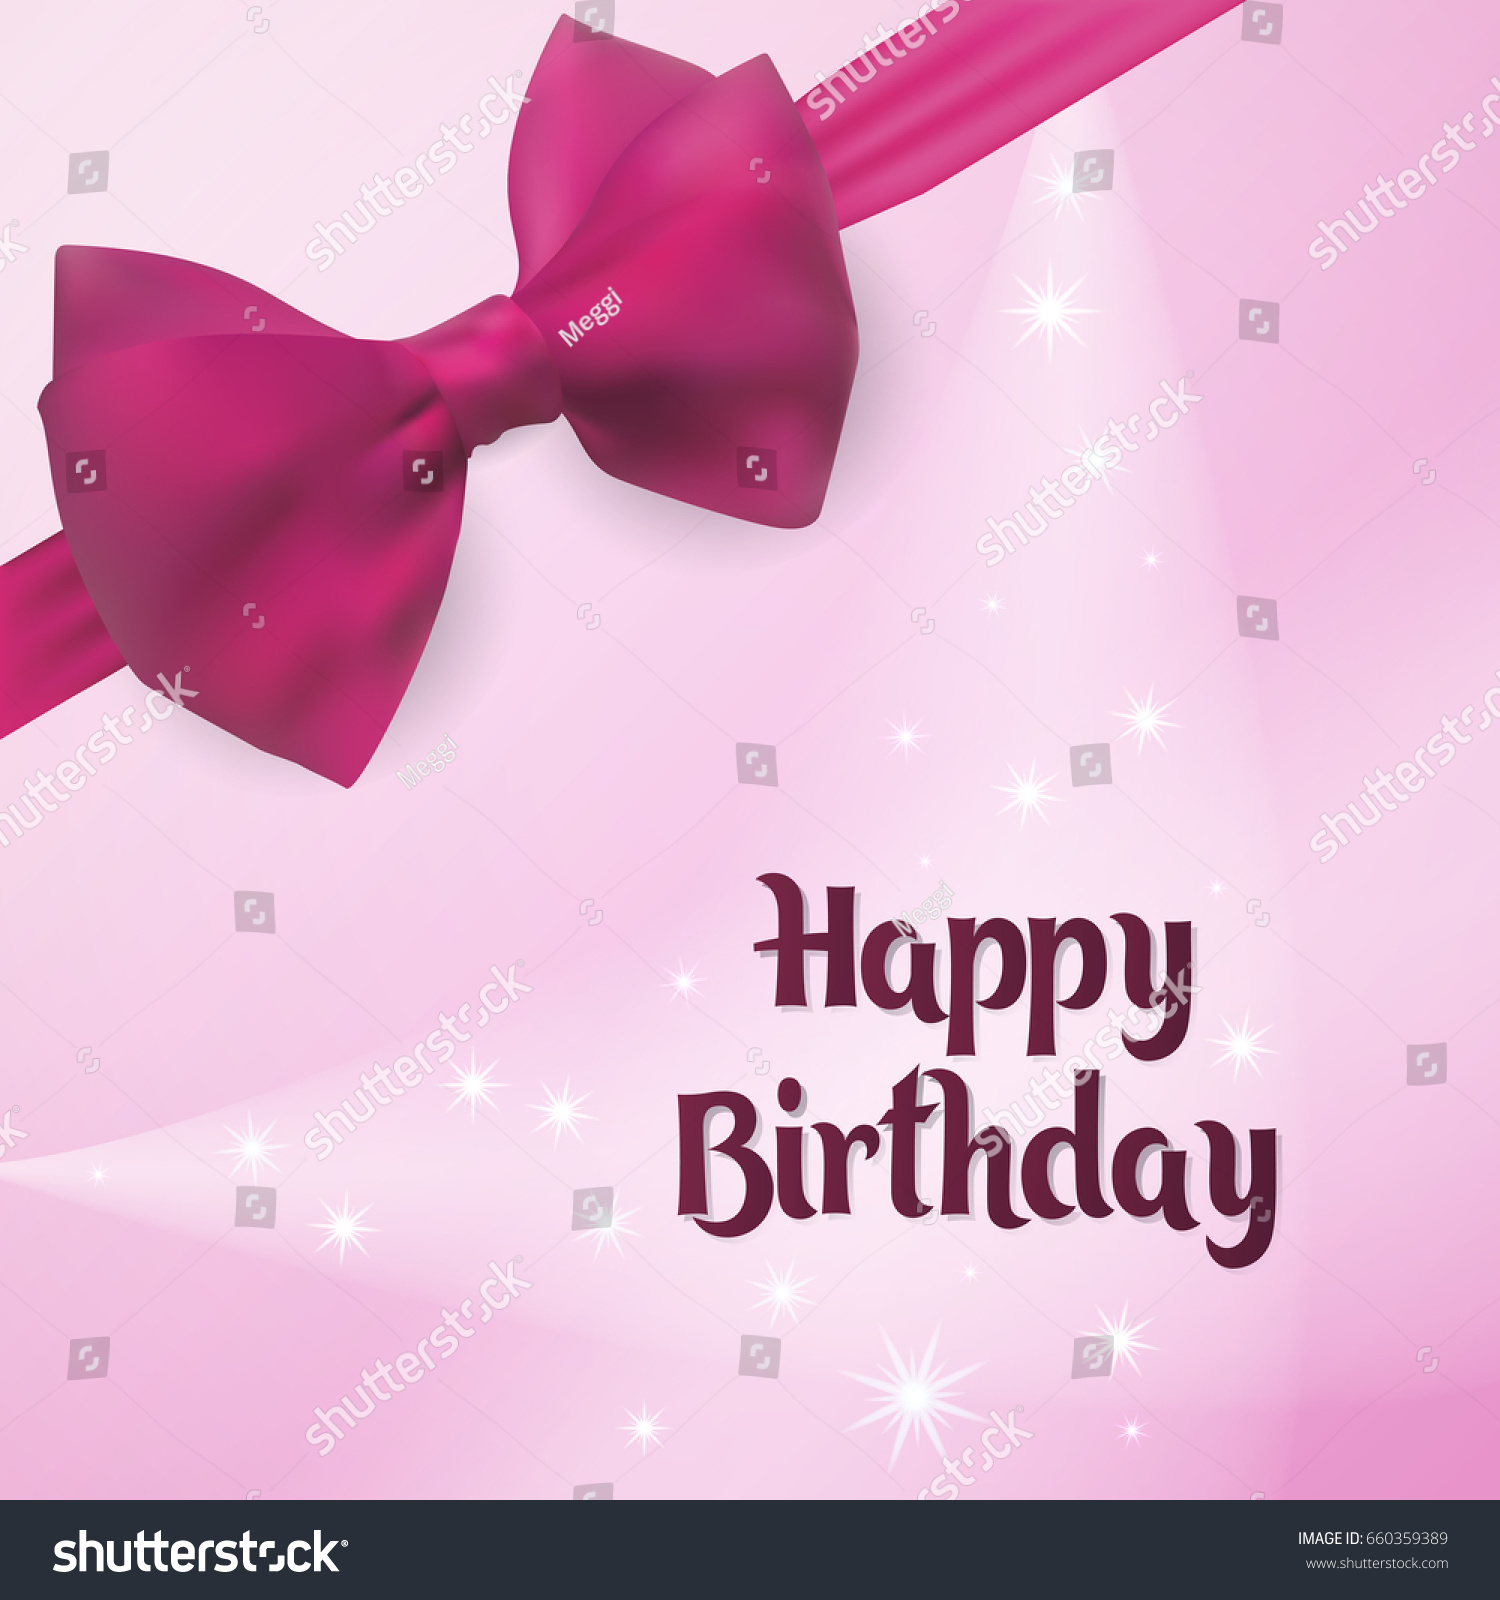 Happy Birthday Birth Greeting Card Vector Illustration Backlight On The Background Decorated With Pink